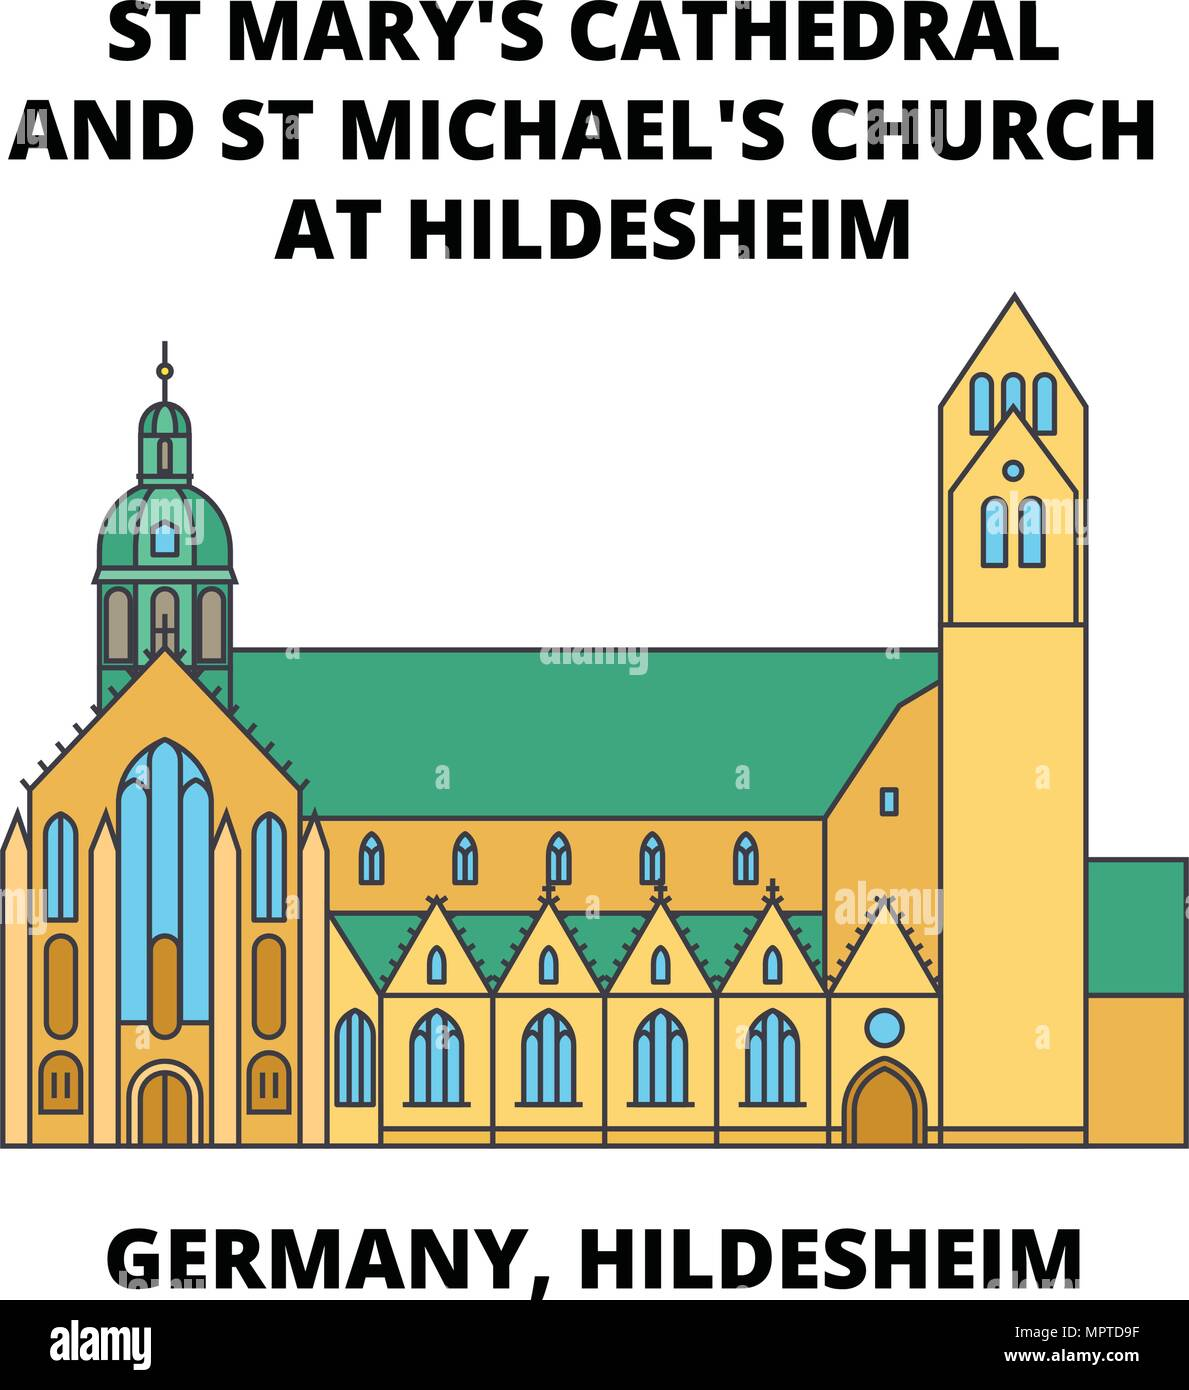 Germany Hildesheim St Marys Cathedral And St Michaels Church At